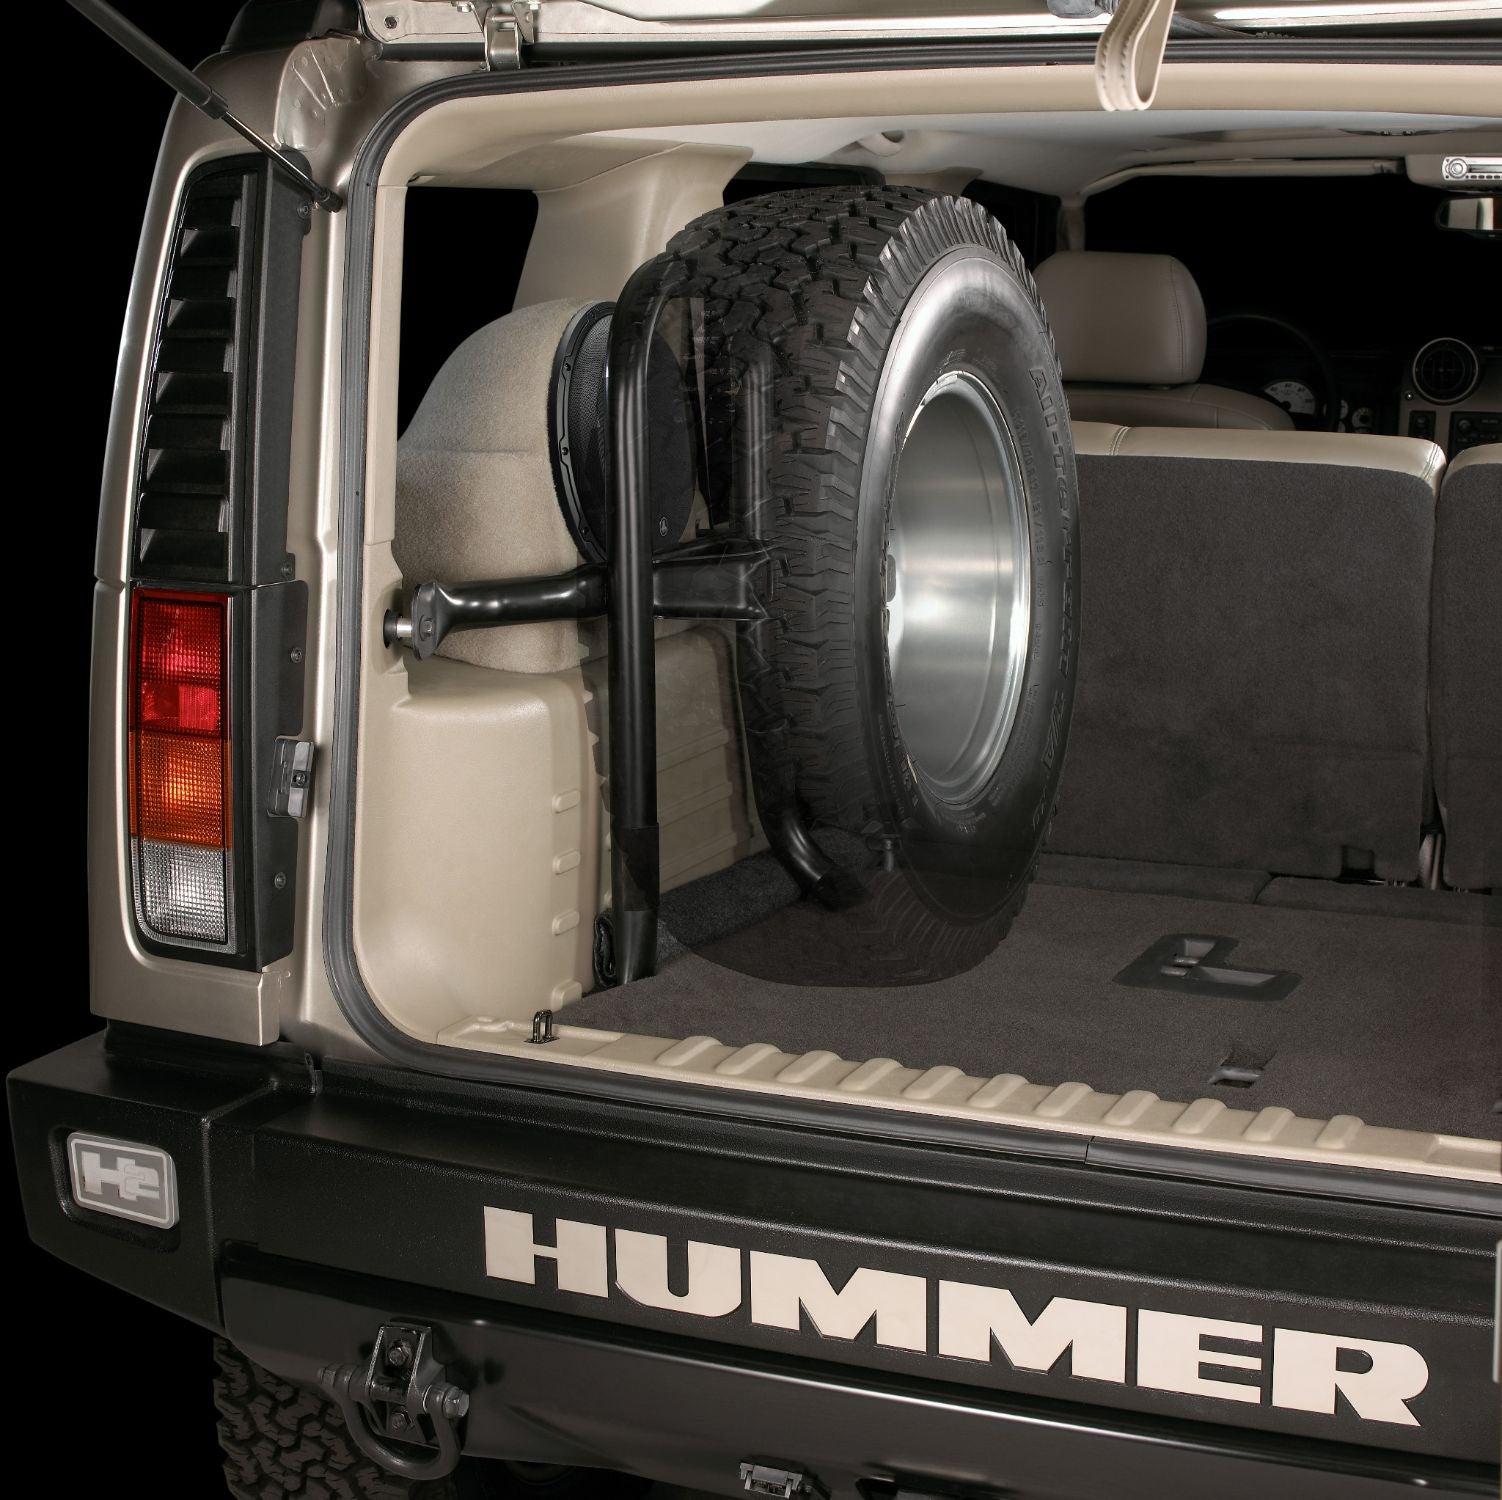 SB-GM-HUMRH2-12W6v3 Stealthbox Installed in Vehicle